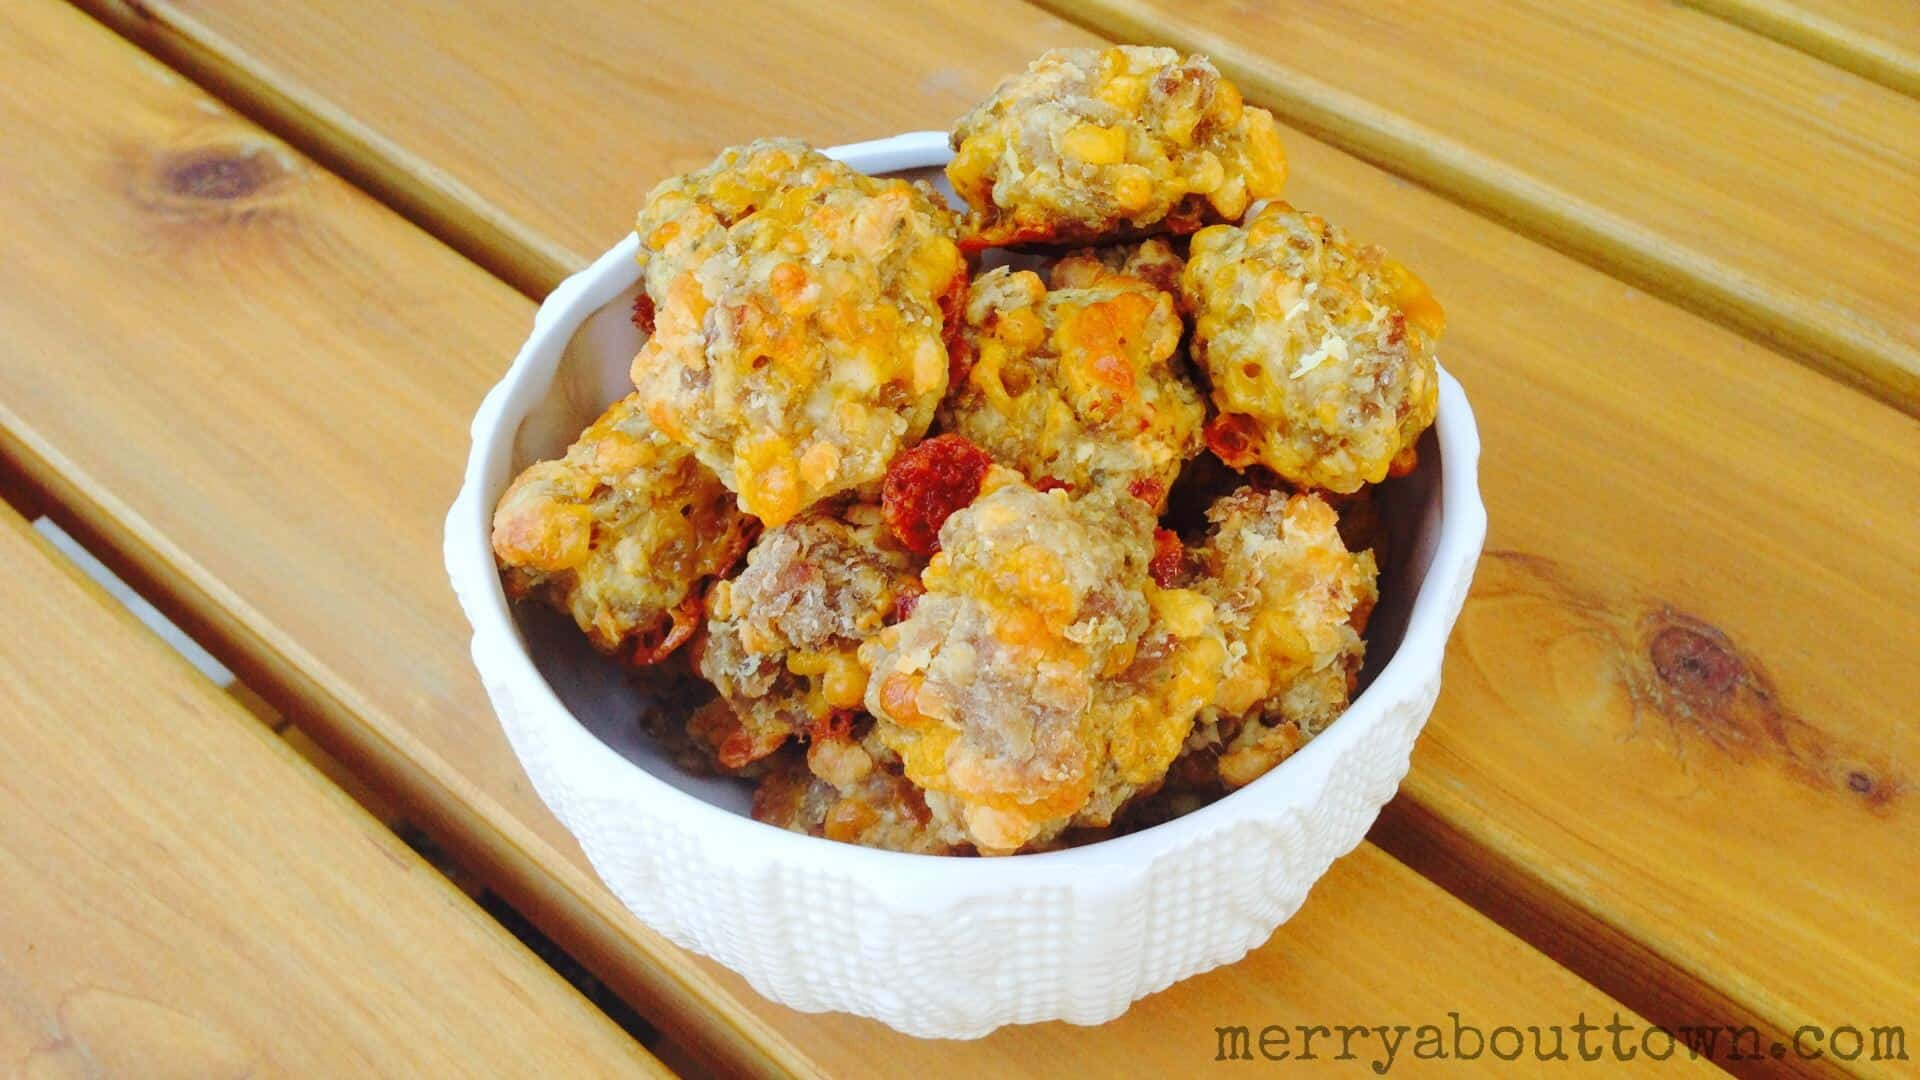 Sausage and Cheddar Balls - Merry About Town